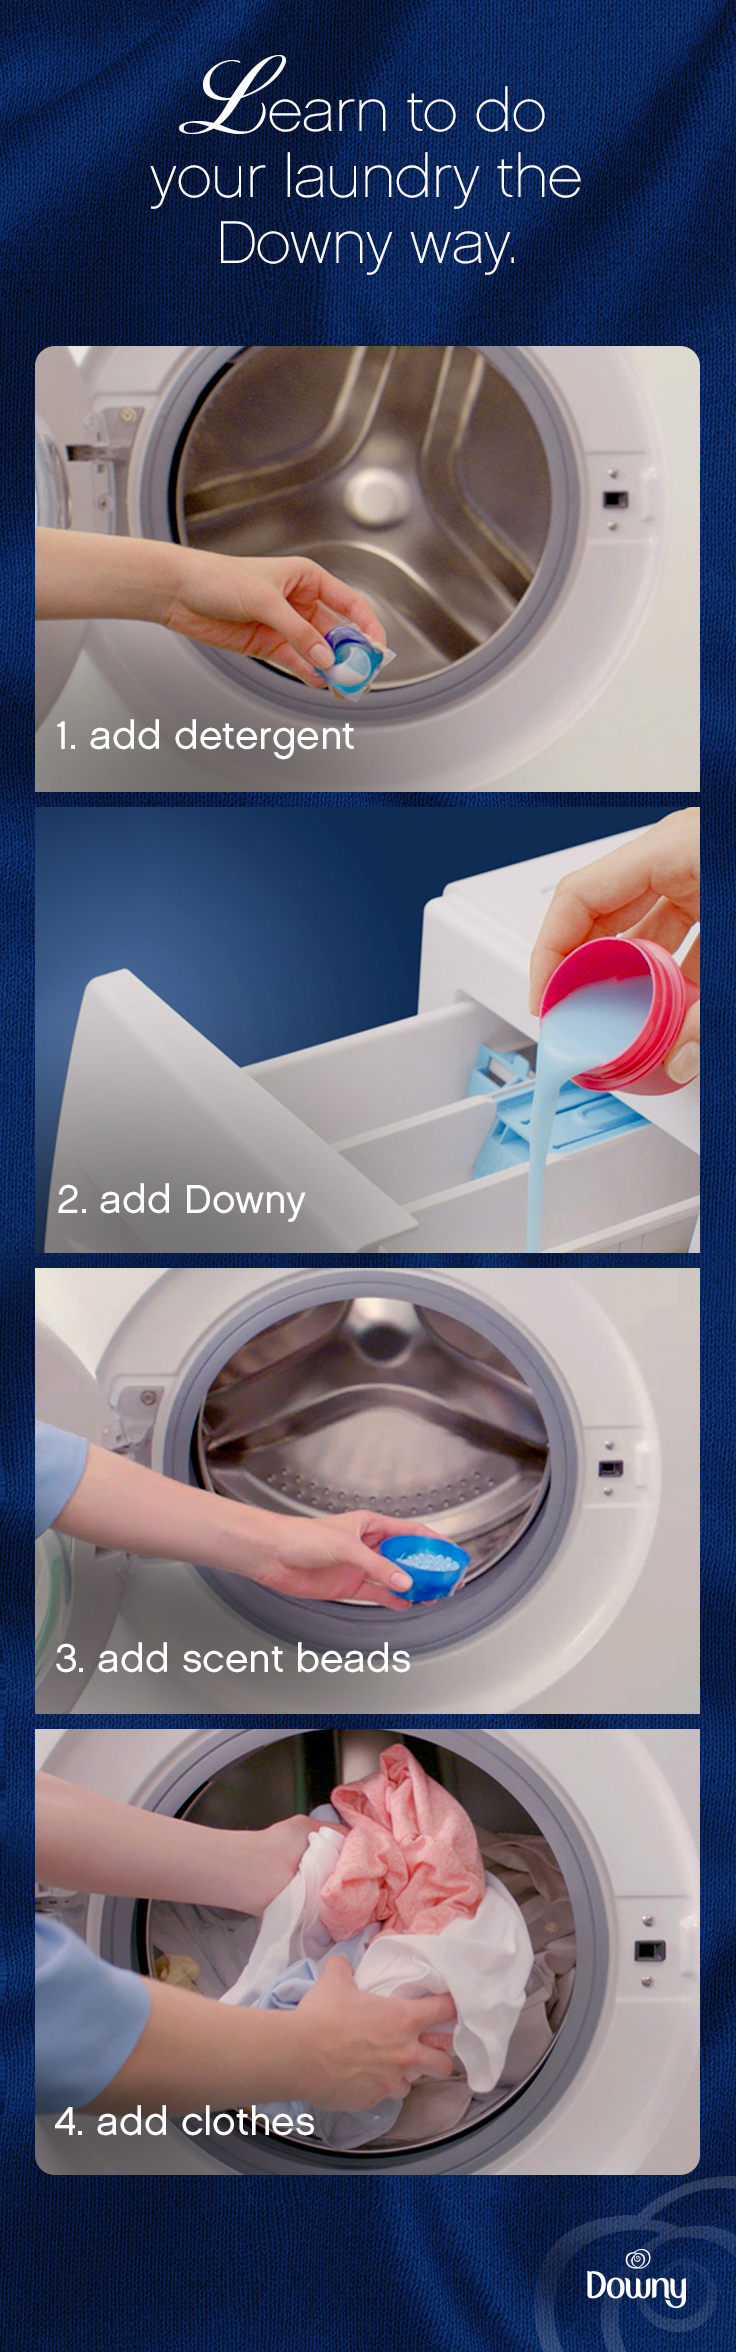 Whether You Re A Laundry Newbie Or Just Need A Refresher Course